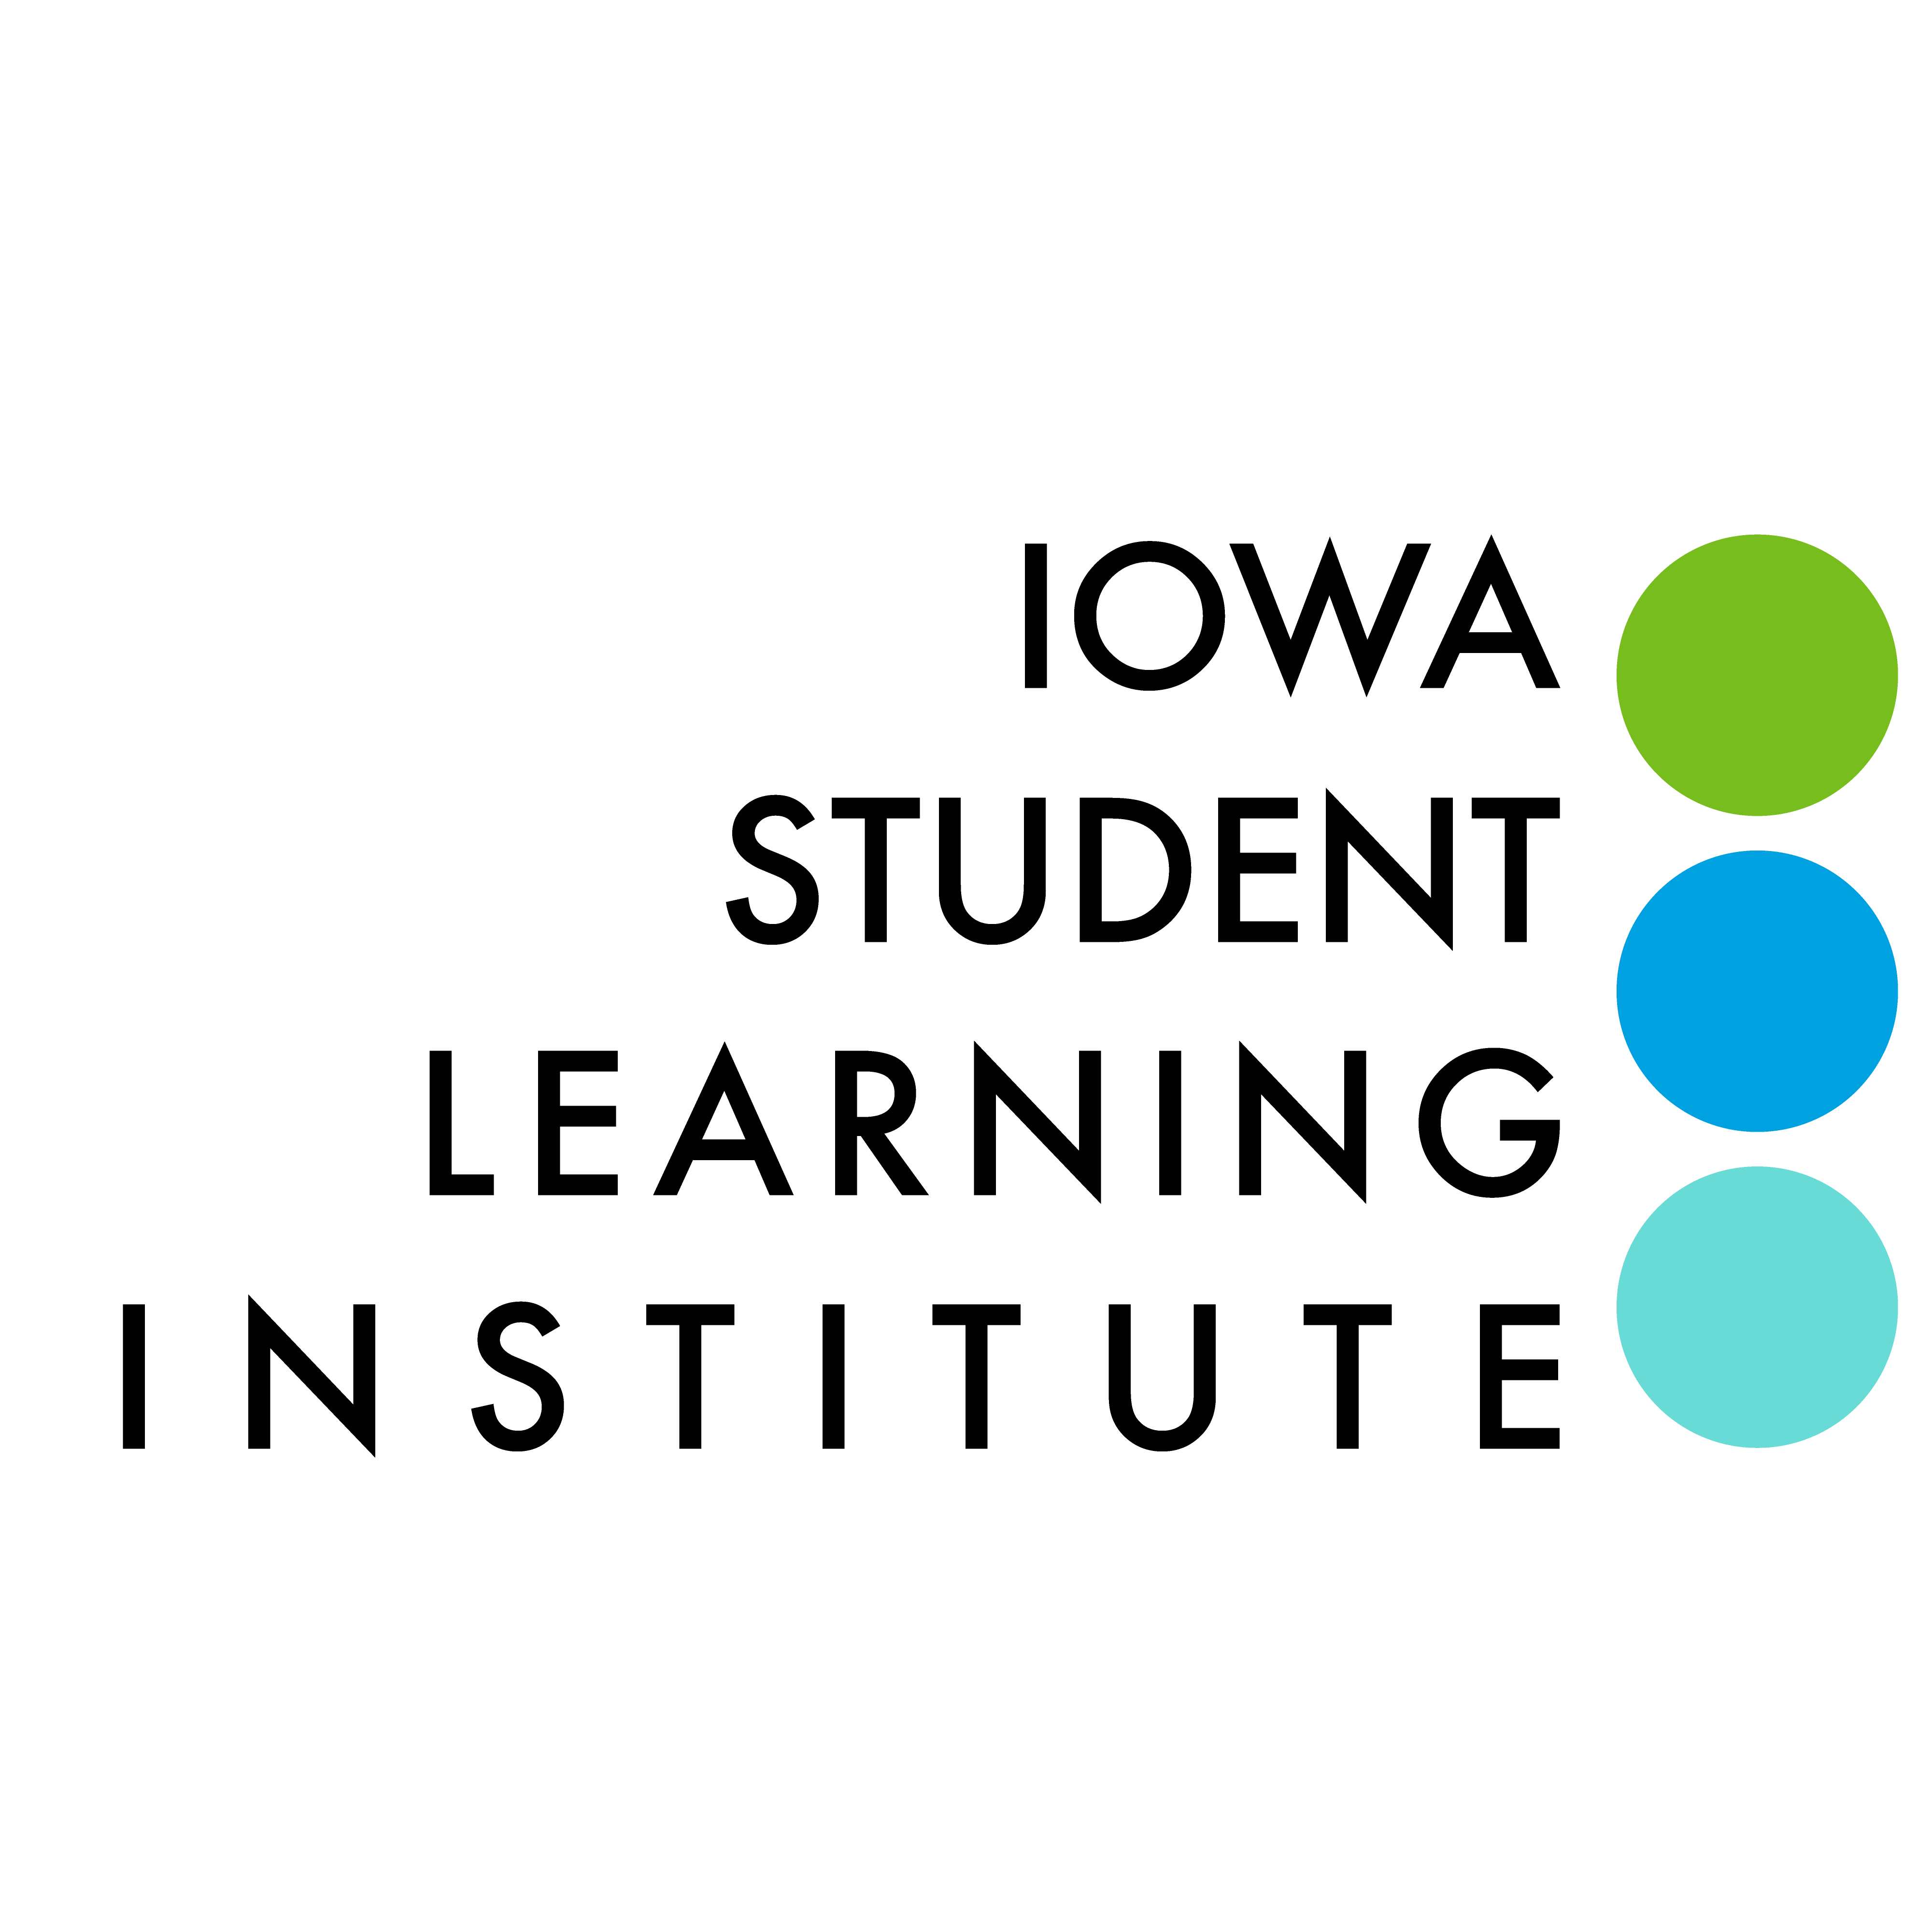 Iowa Student Learning Institute